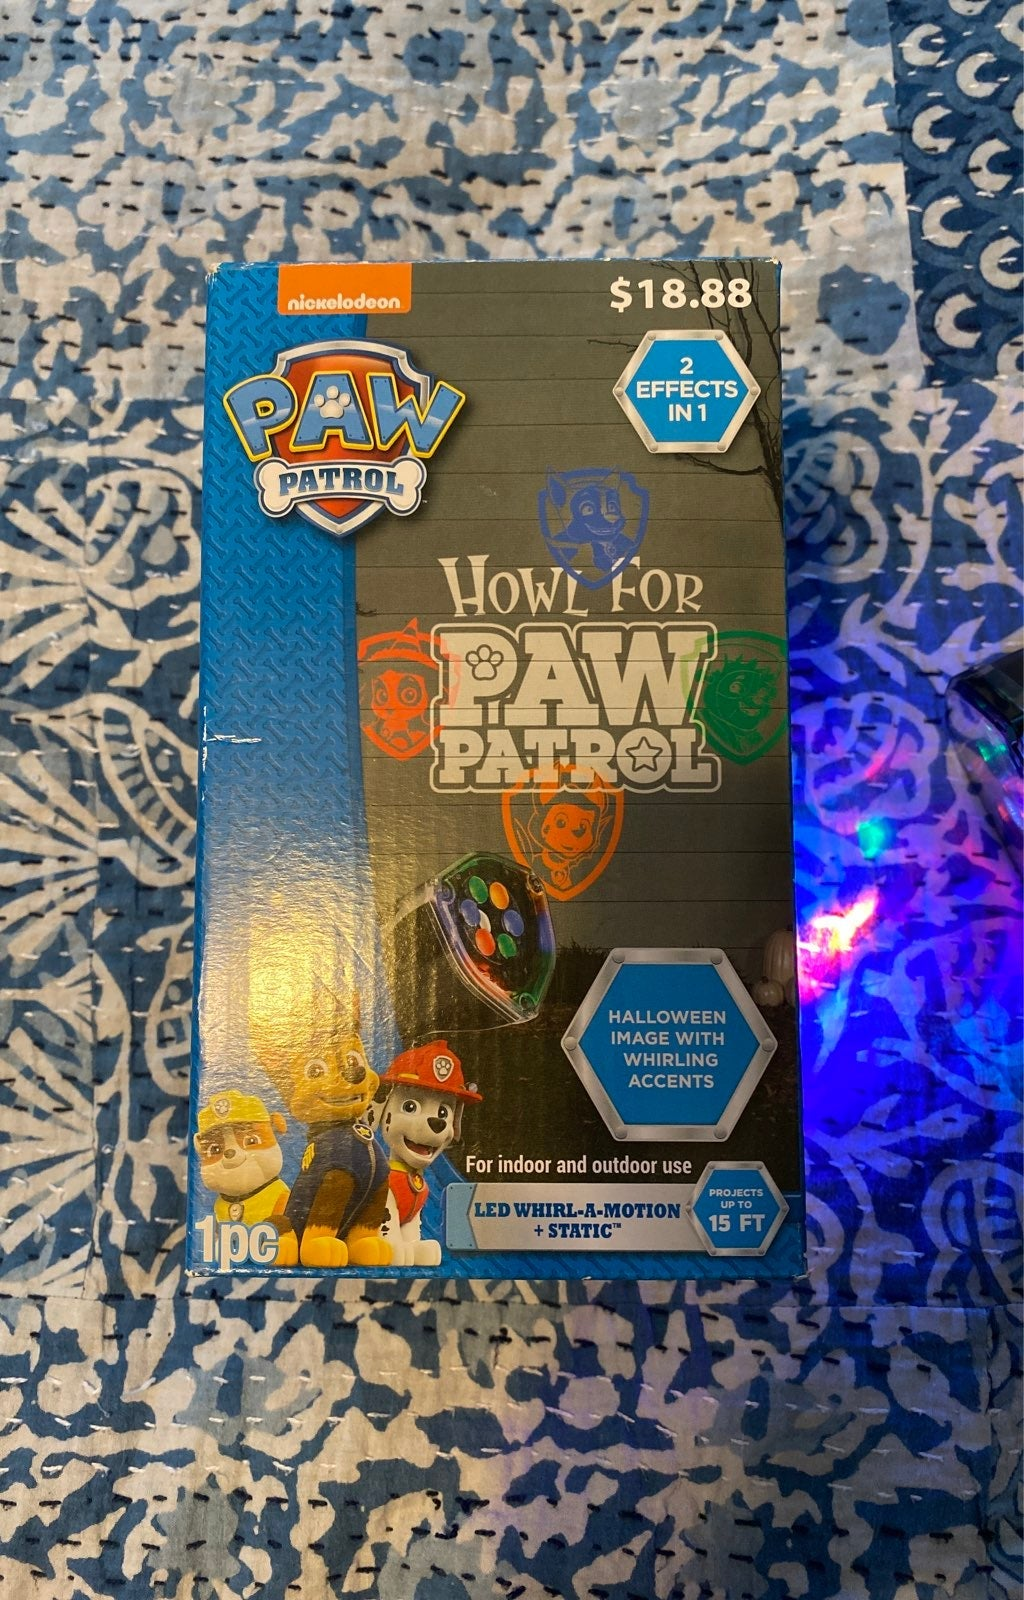 Paw Patrol Halloween Led Whirl-a-Motion